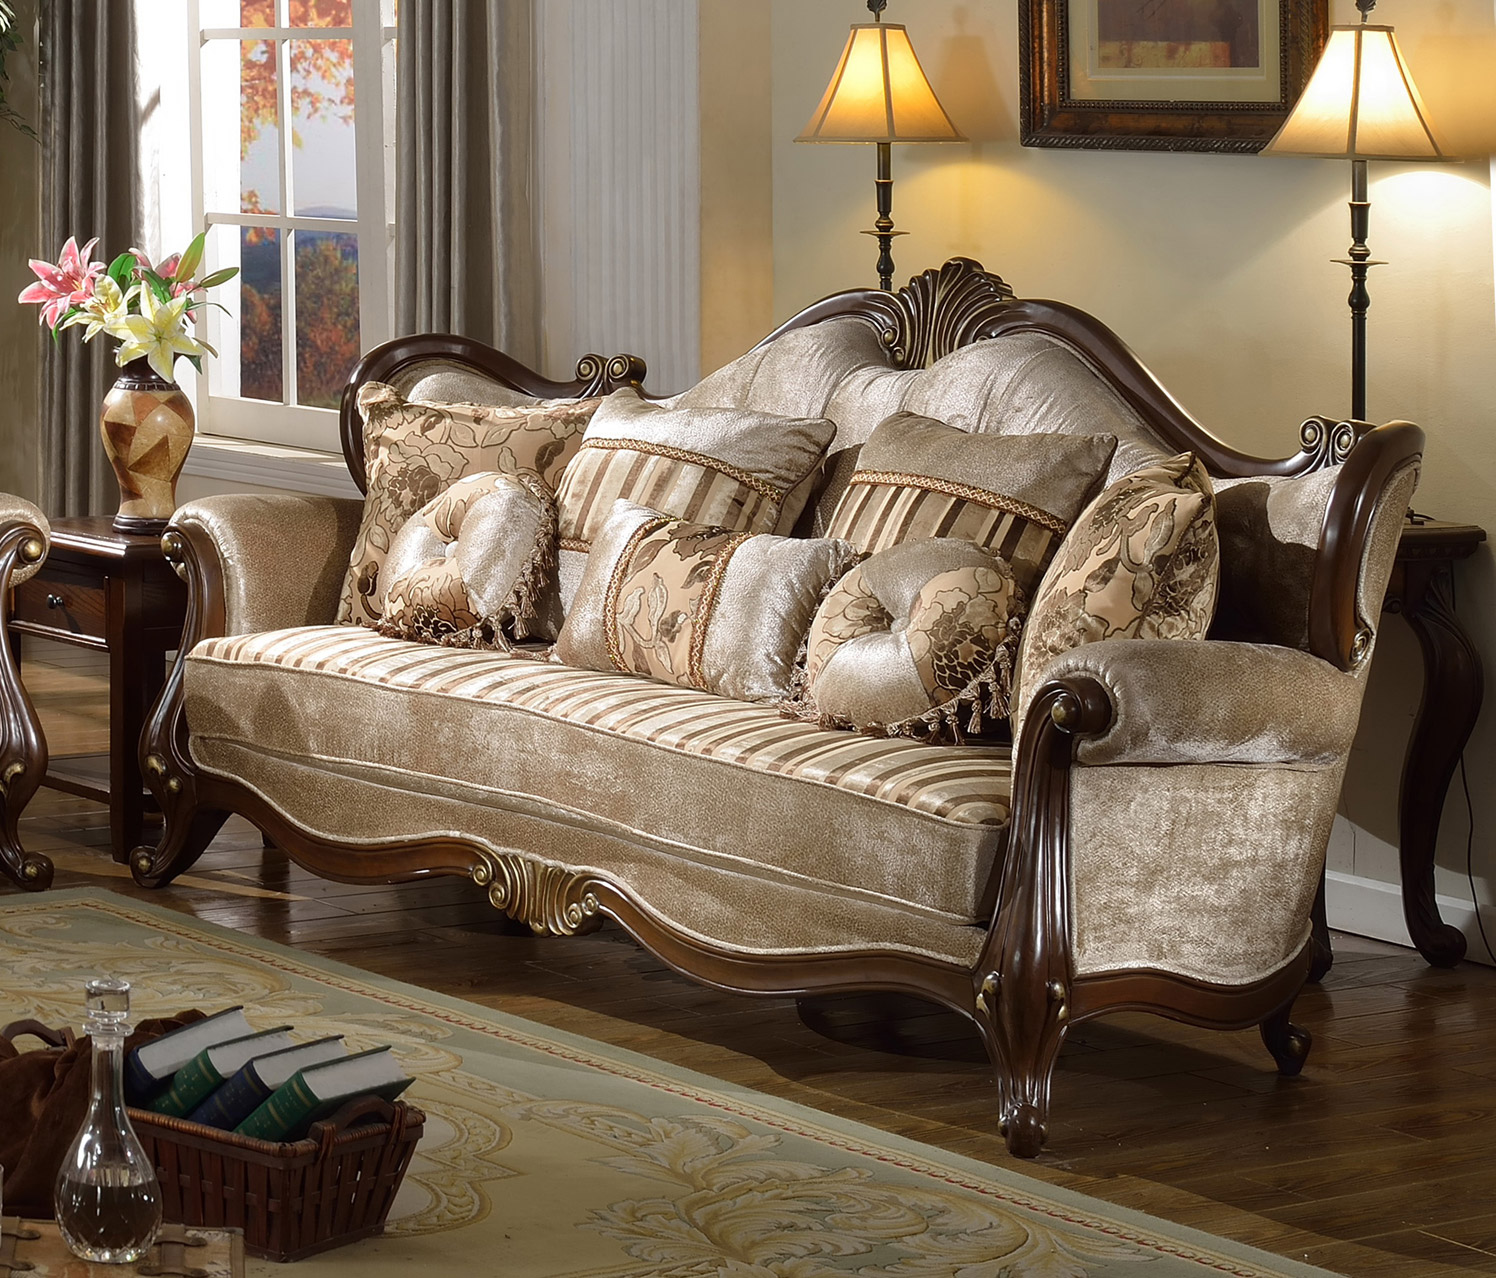 French provincial living room set furniture roy home design - Home and living ...